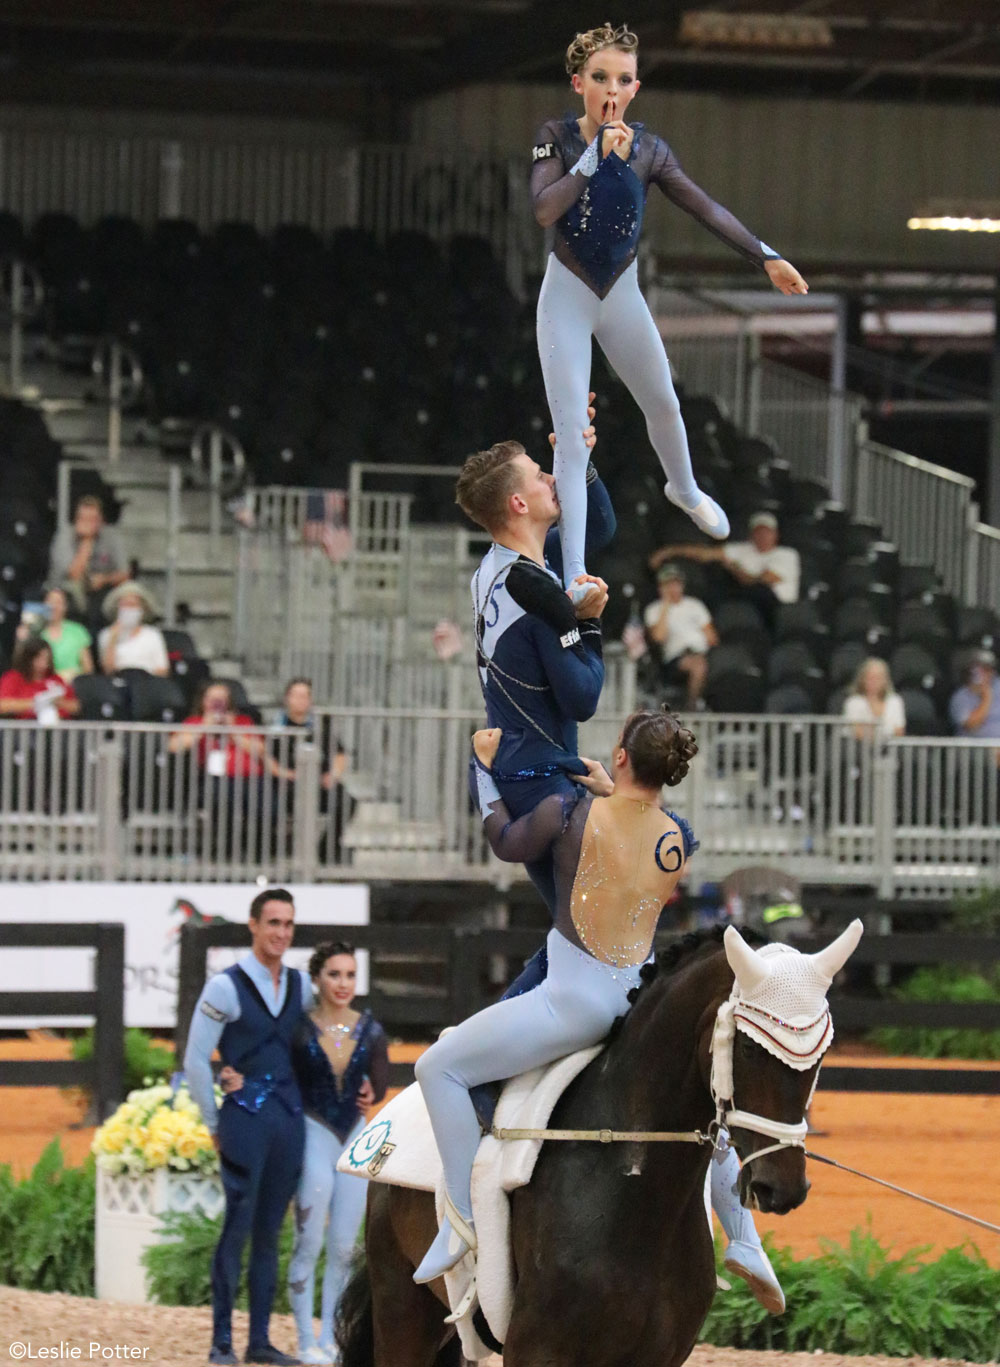 Germany's vaulting team won the gold medal in the Nations Team Vaulting Championship.